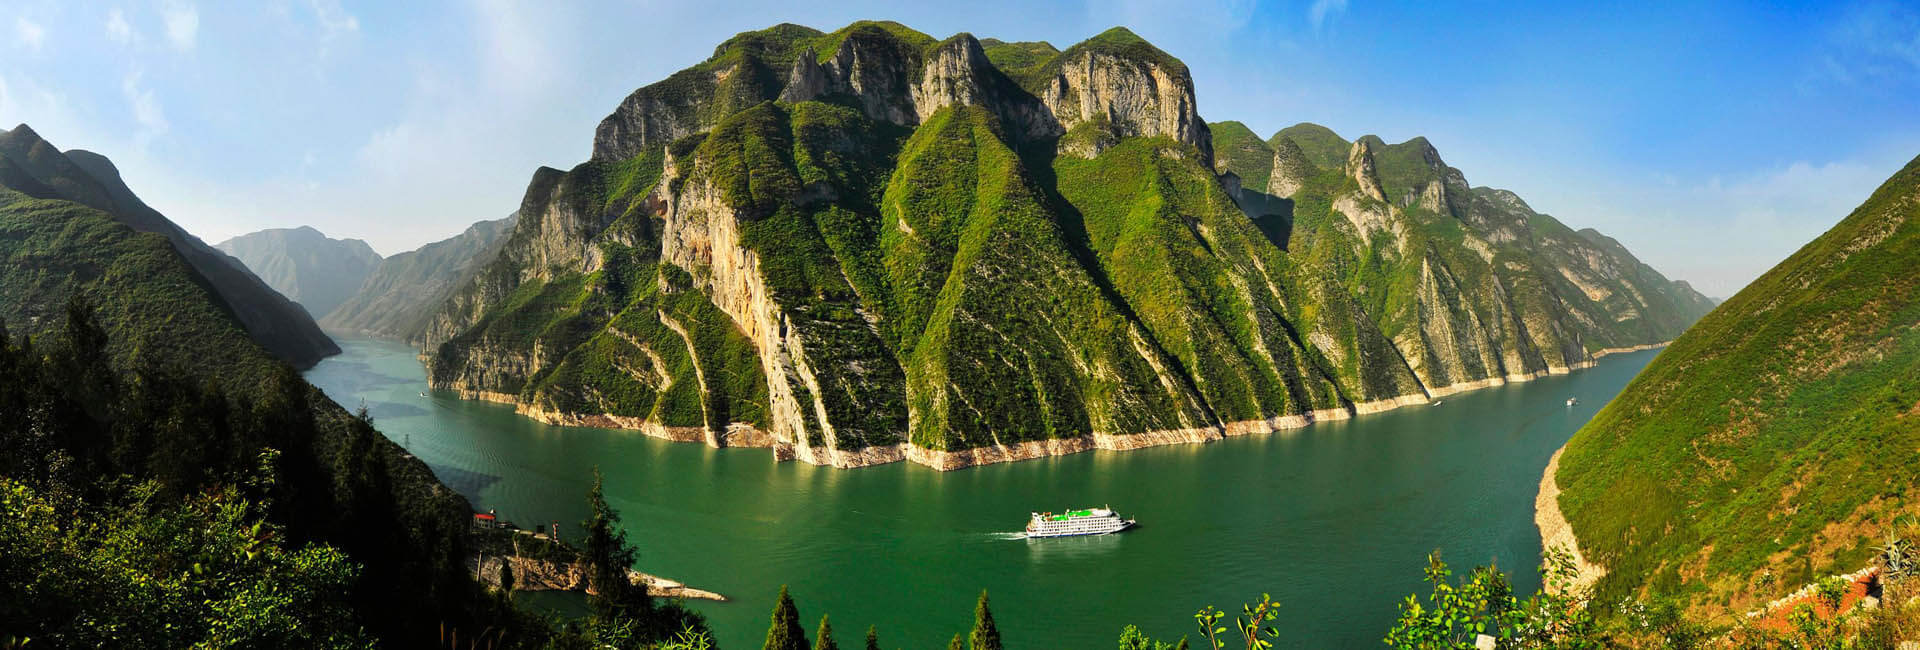 13 Days China Leisure Tour with Yangtze Cruise & Train Experience